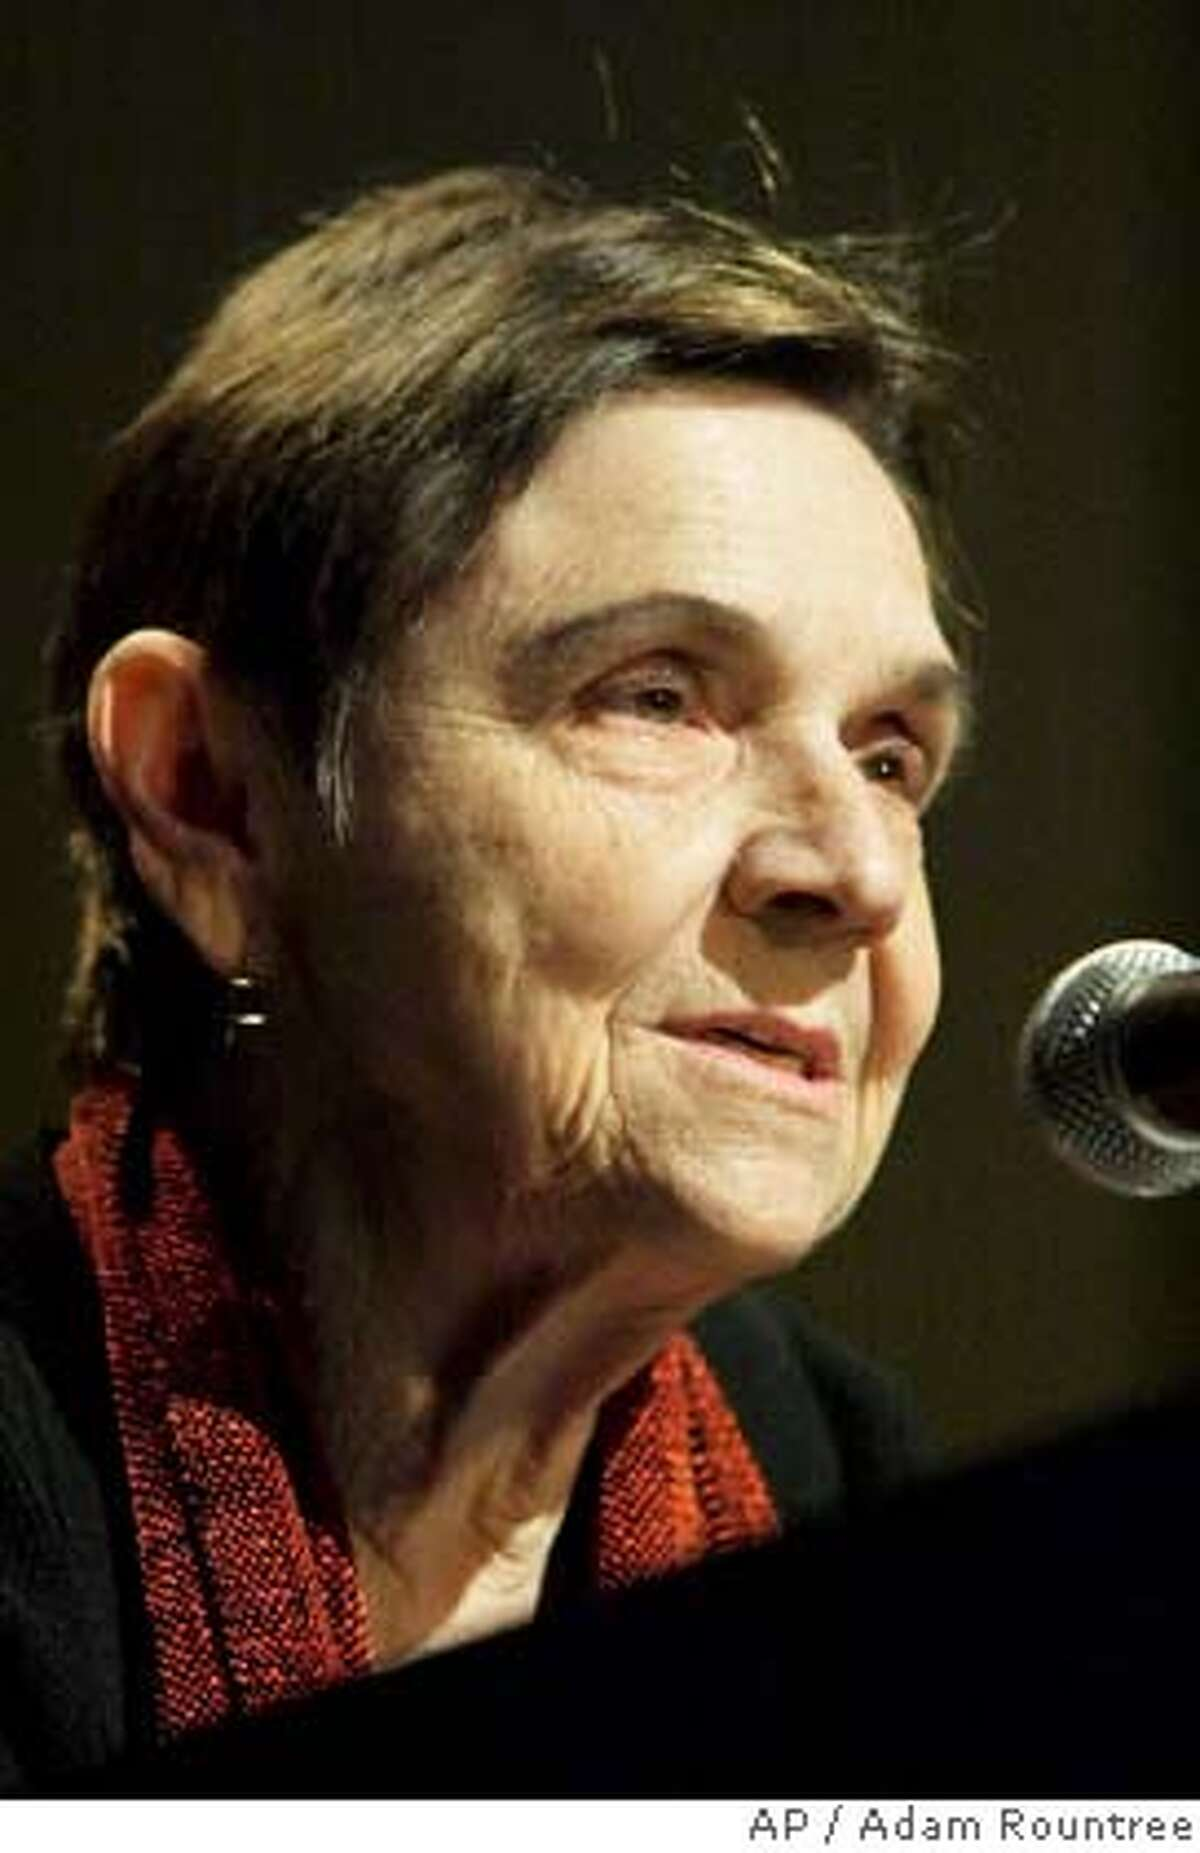 Adrienne Rich speaks at the 2004 National Book Critics Circle Award in New York, Friday, March 18, 2005. Rich won the poetry award for her book The School Among The Ruins. (AP Photo/Adam Rountree) Ran on: 03-25-2005 Ran on: 03-25-2005